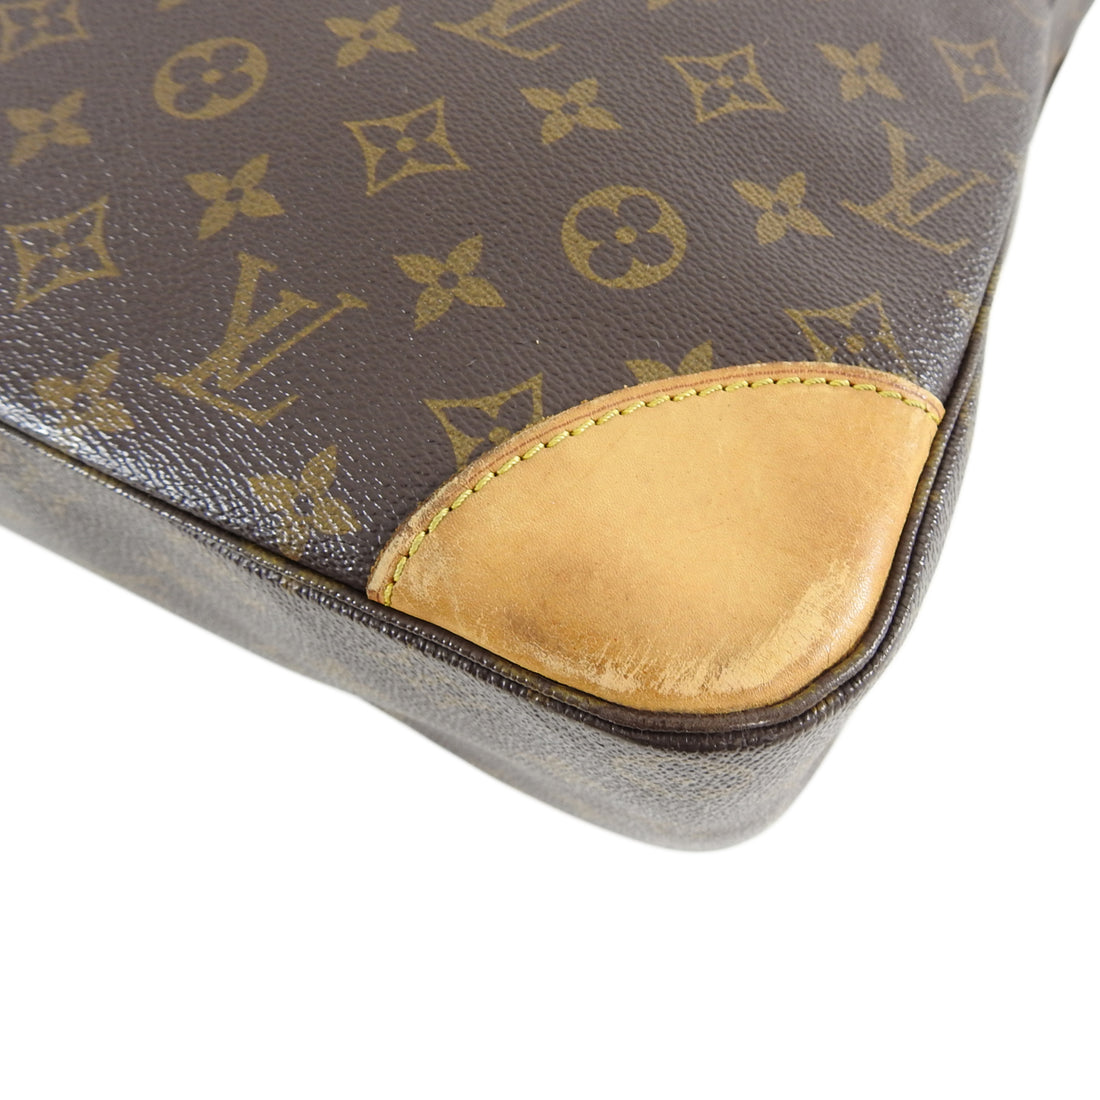 Louis Vuitton Vintage Monogram Boulogne Shoulder Bag